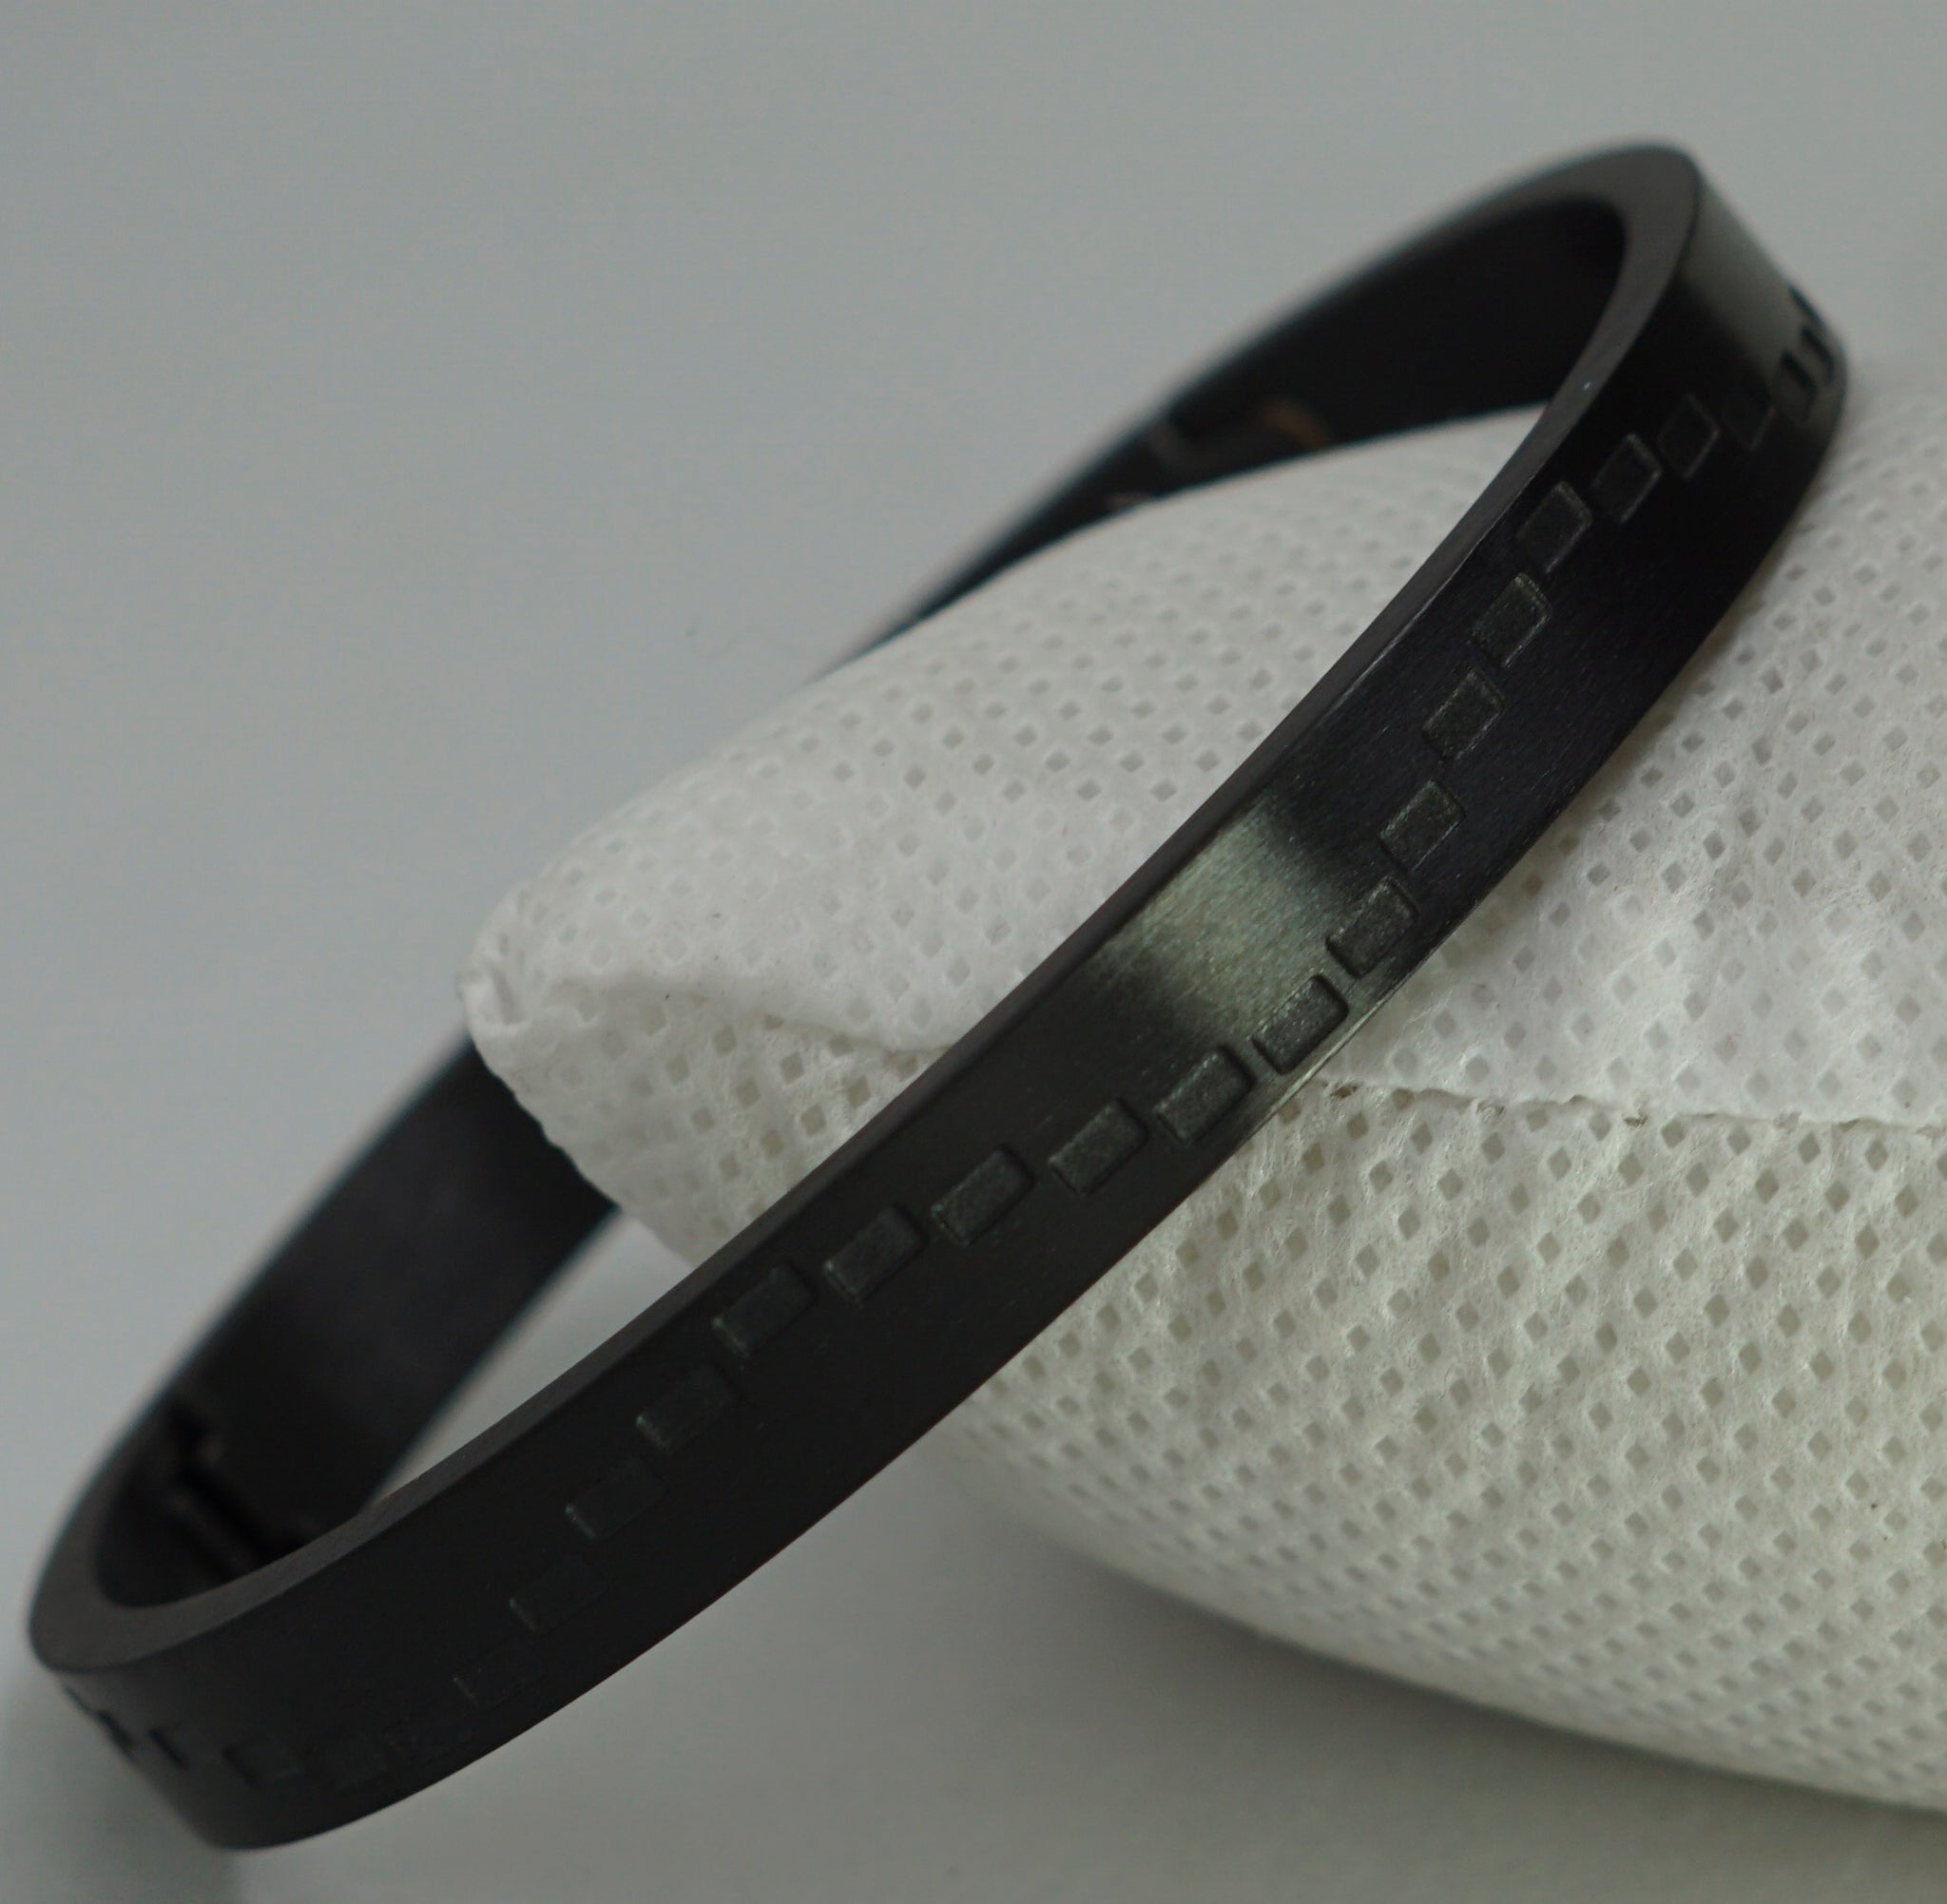 LINER FULL BLACK BRACELATE